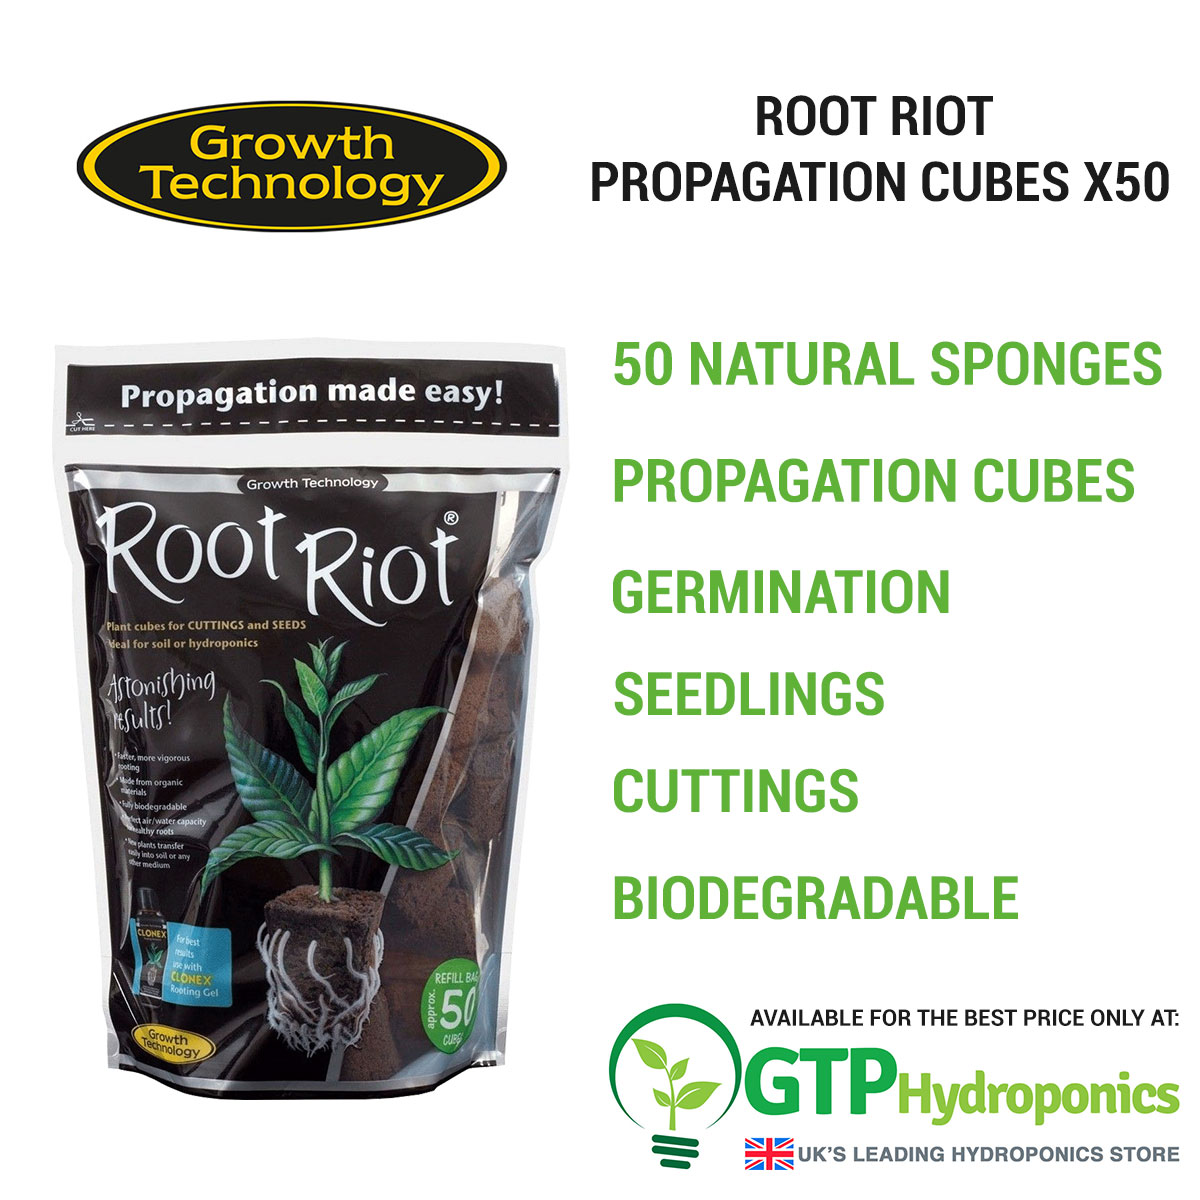 Root Riot Propagation Cubes x50 overview